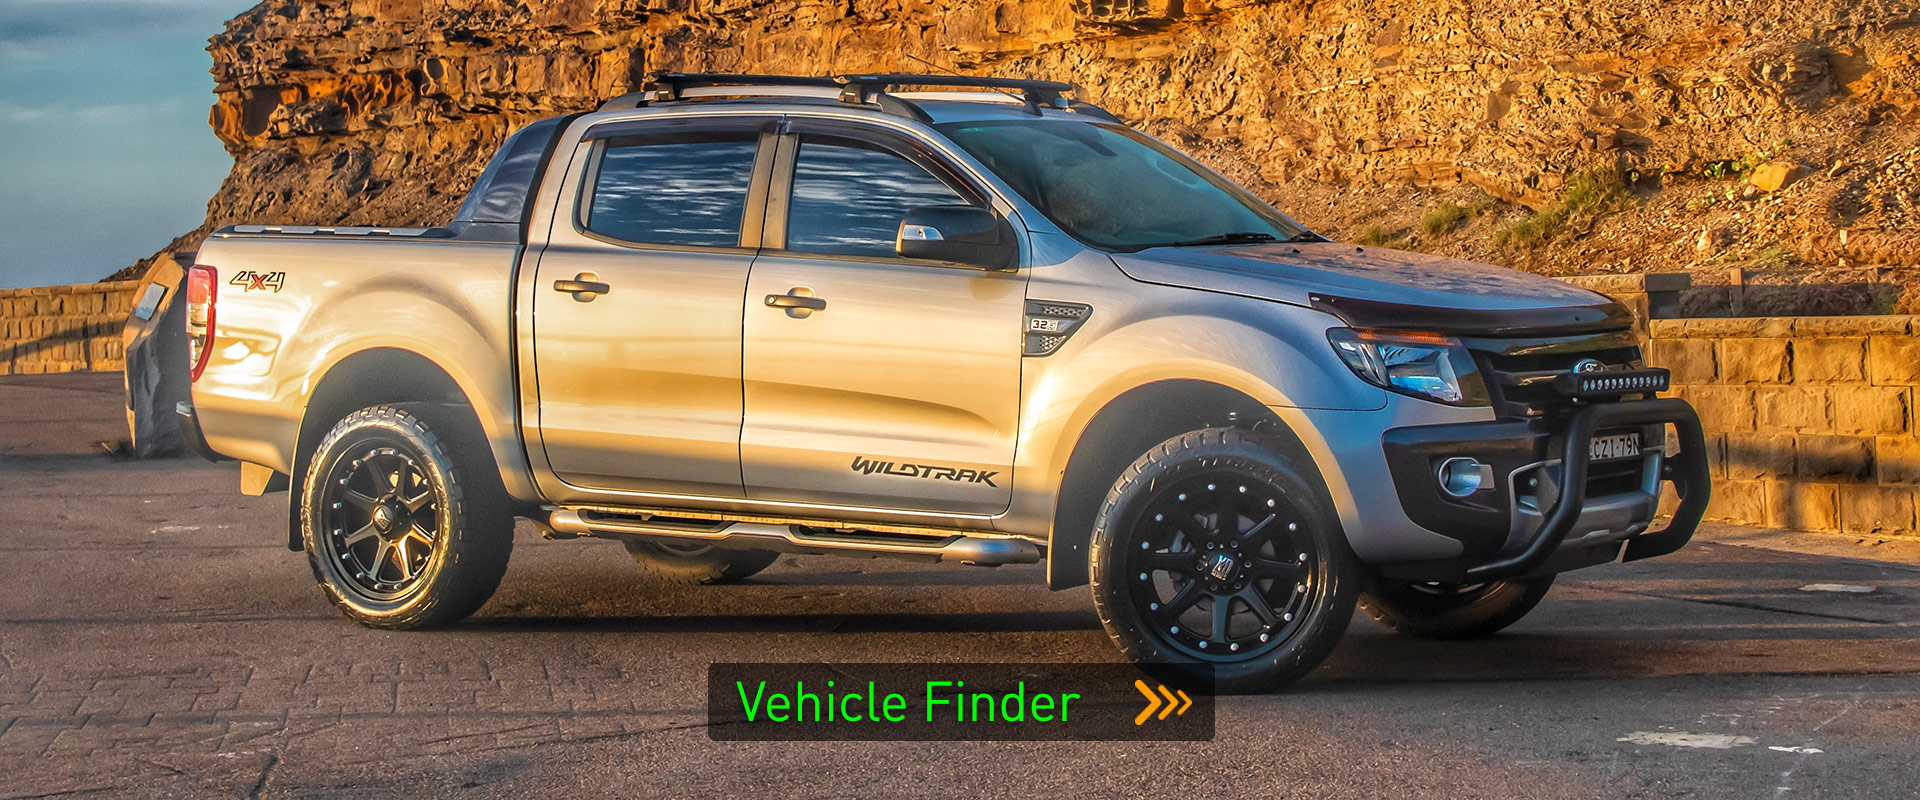 Vehicle Finder Service